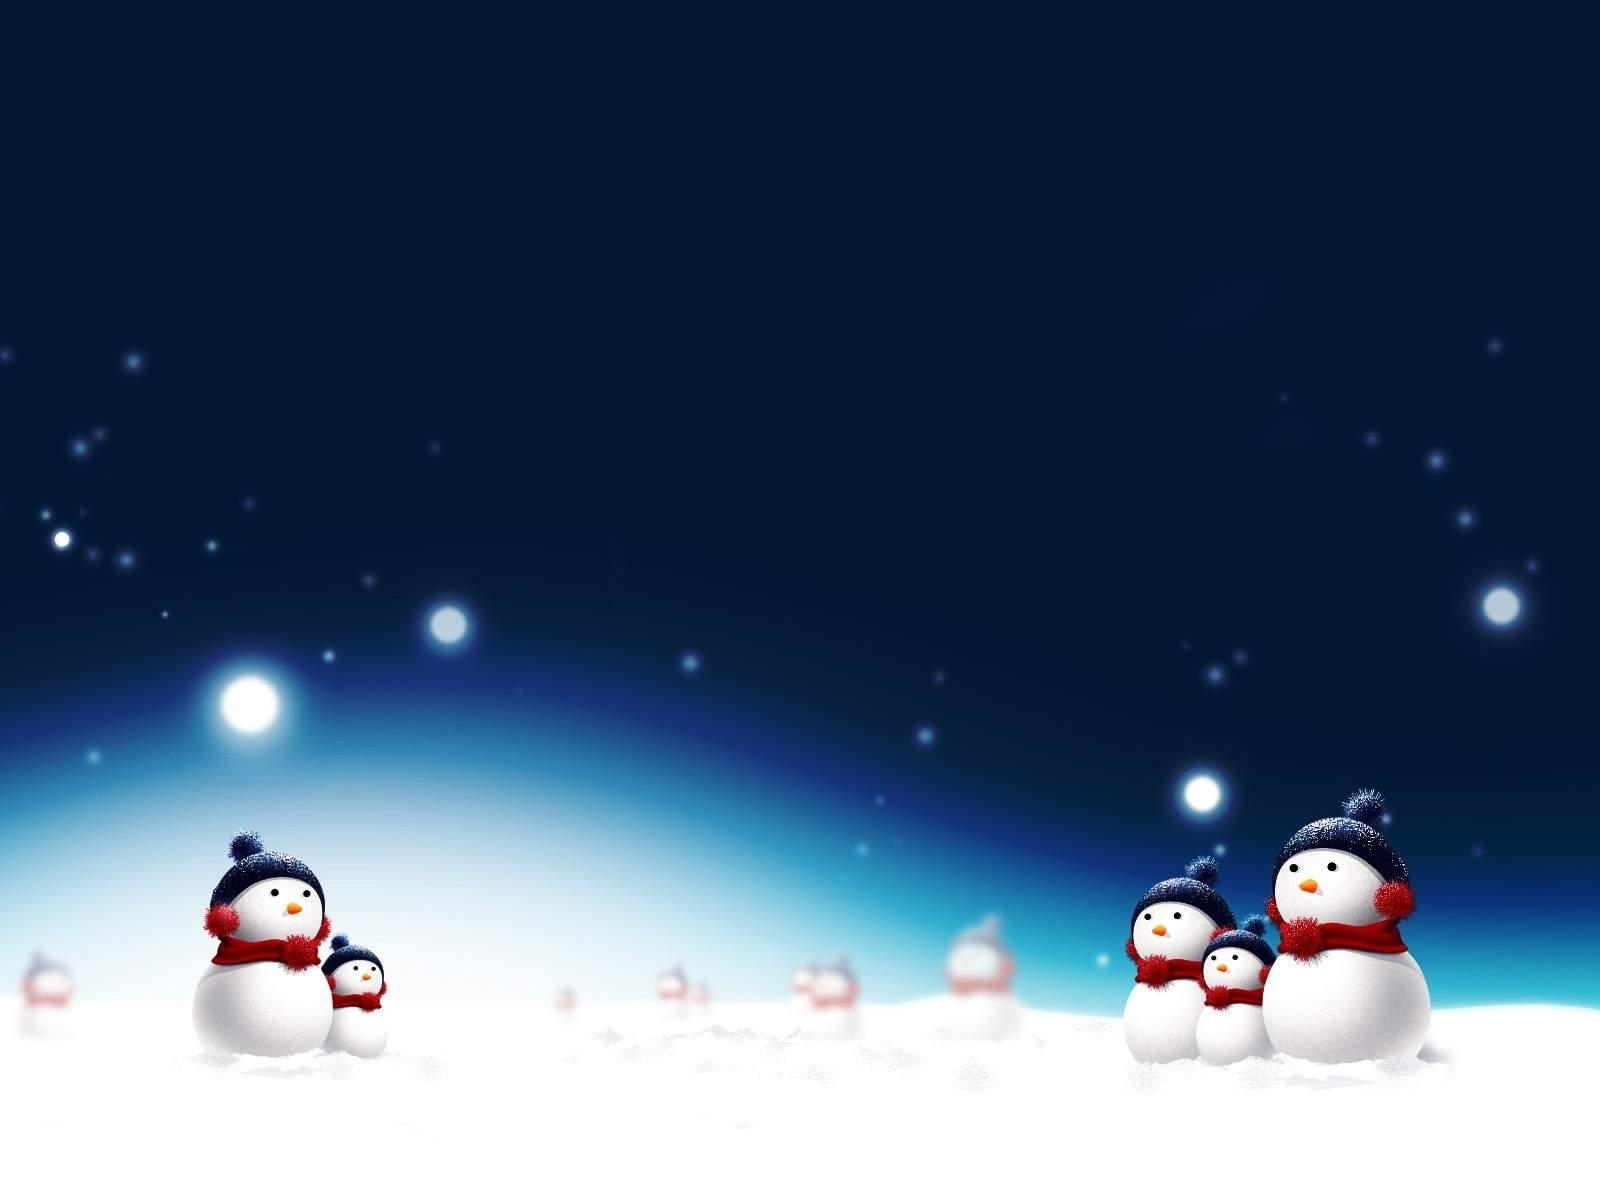 Collection of Christmas Desktop Wallpapers on Spyder 1600x1200